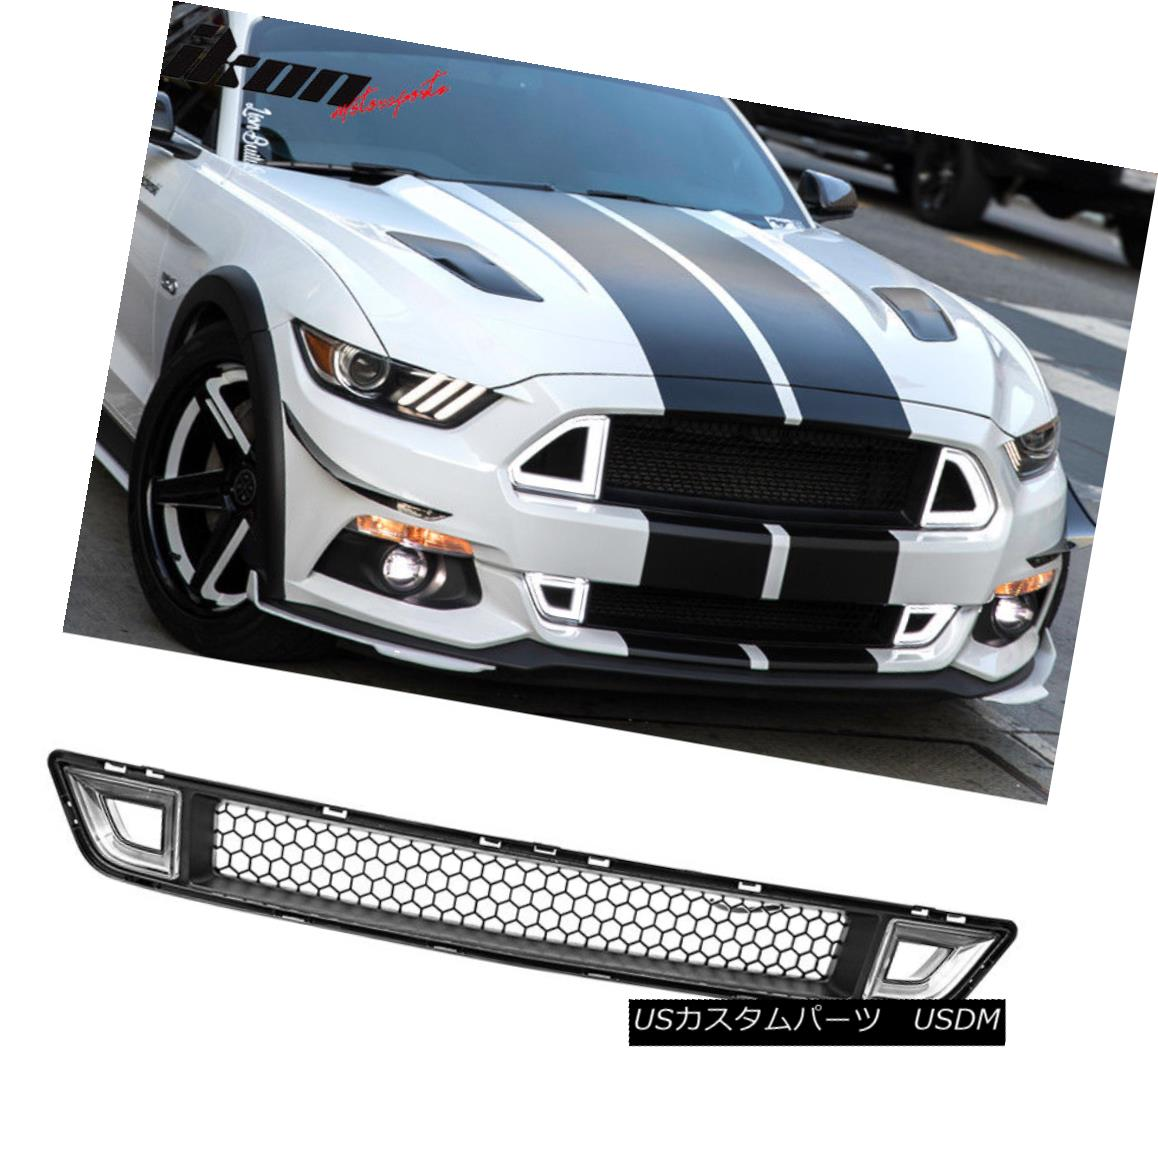 グリル Fits 15-17 Ford Mustang IKON Style Front Lower Grille With Clear DRL LED Light Ford 15-17 Ford MustangクリアDRL LEDライト付きIKONスタイルフロントローワーグリル